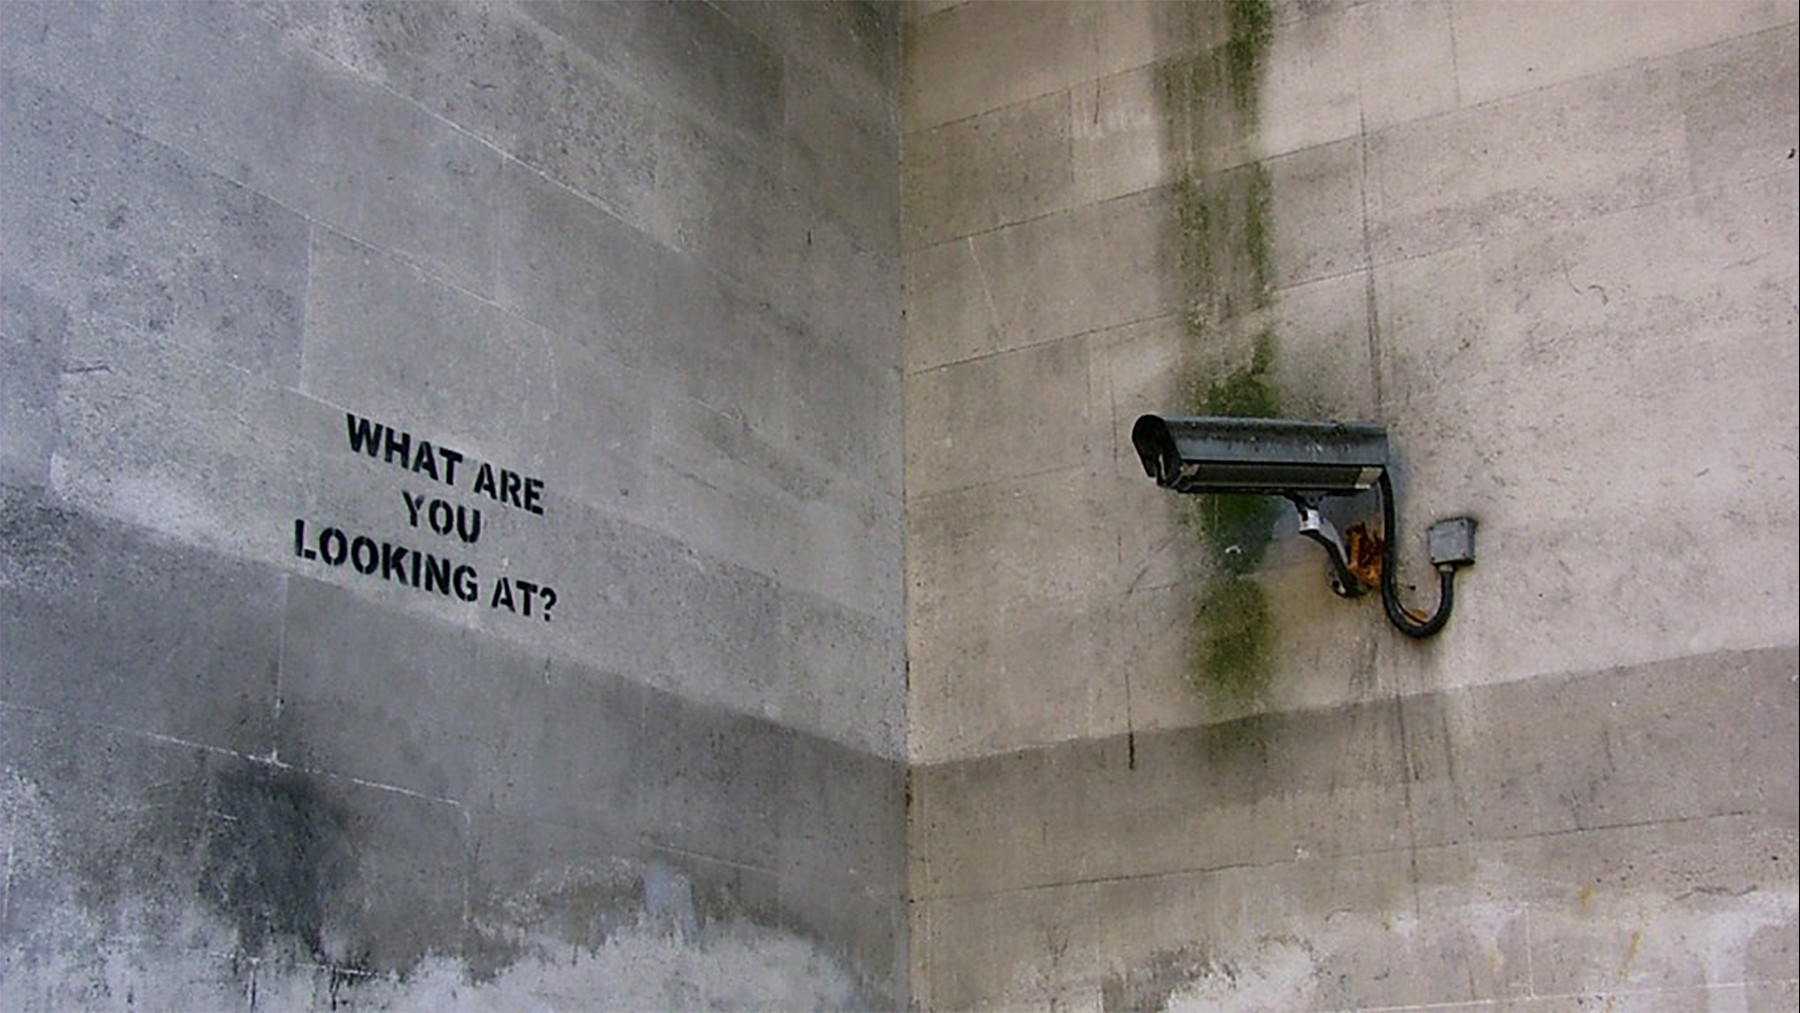 """Photo of Banksy's street art reading """"What are you looking at?"""" beside a CCTV camera on a concrete wall."""